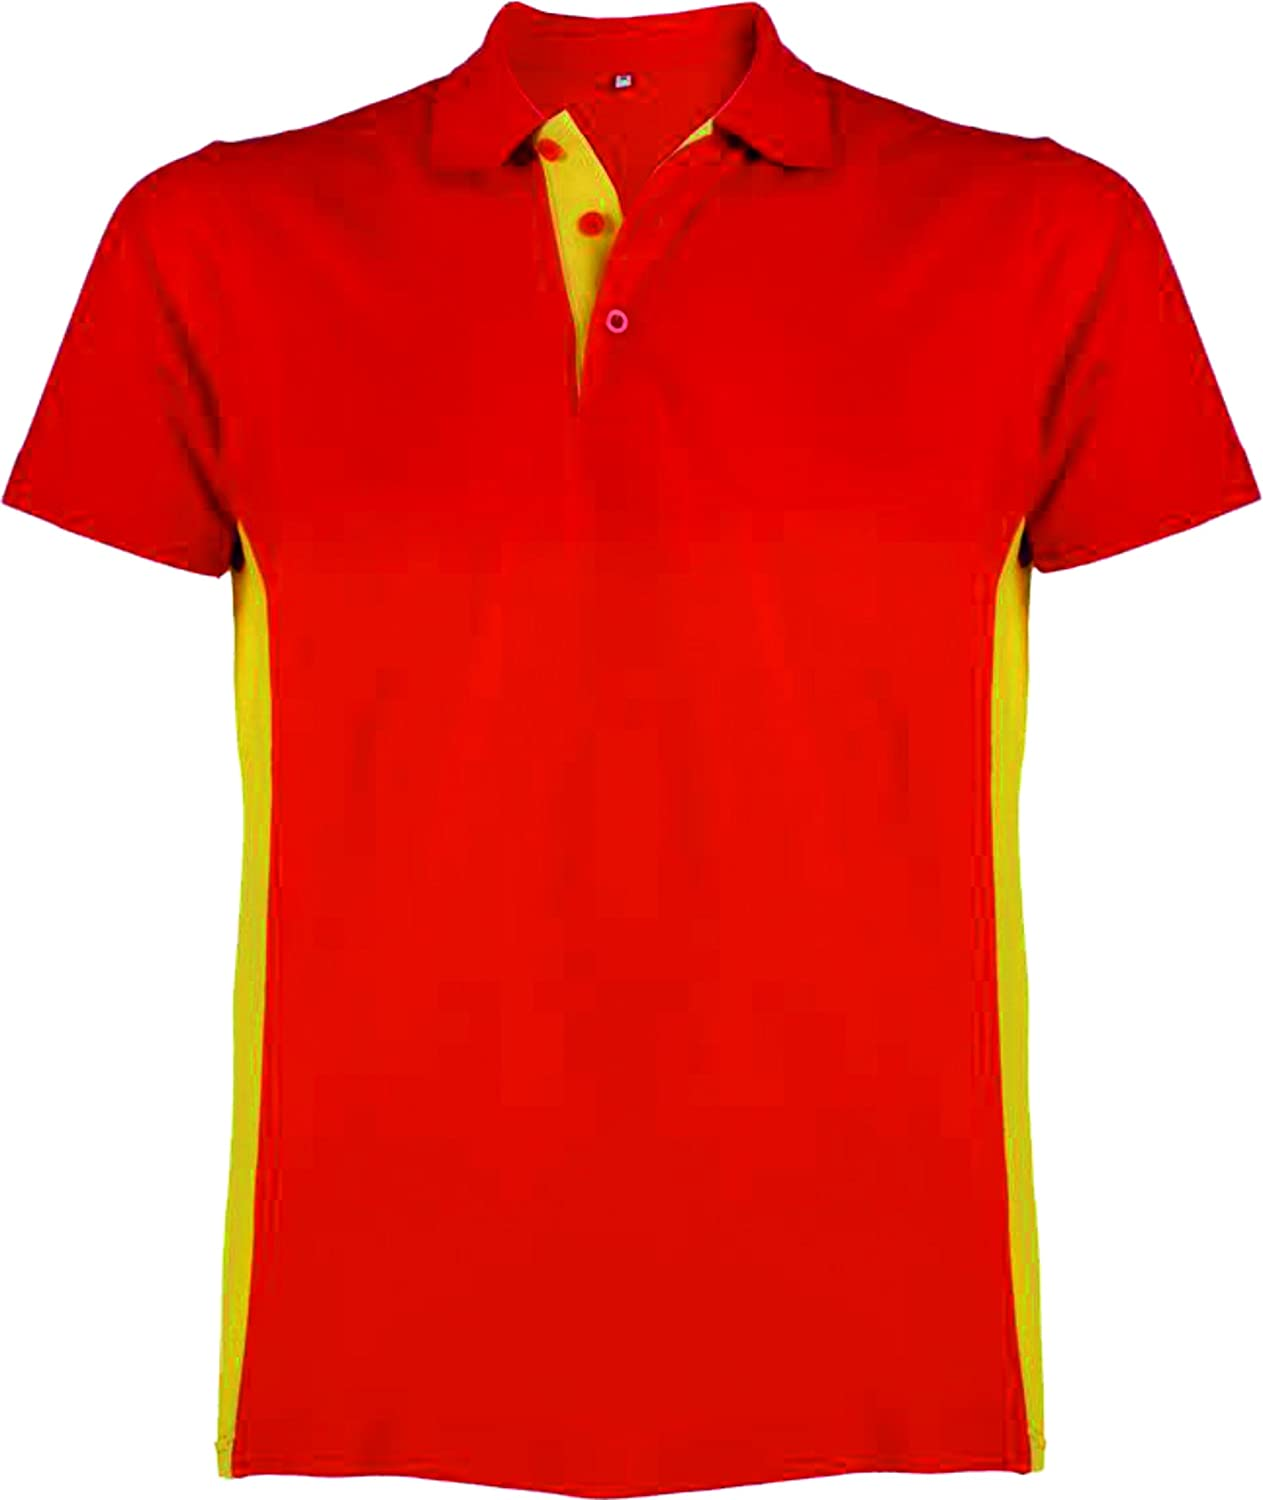 Polo Europe Spain (XL): Amazon.es: Ropa y accesorios